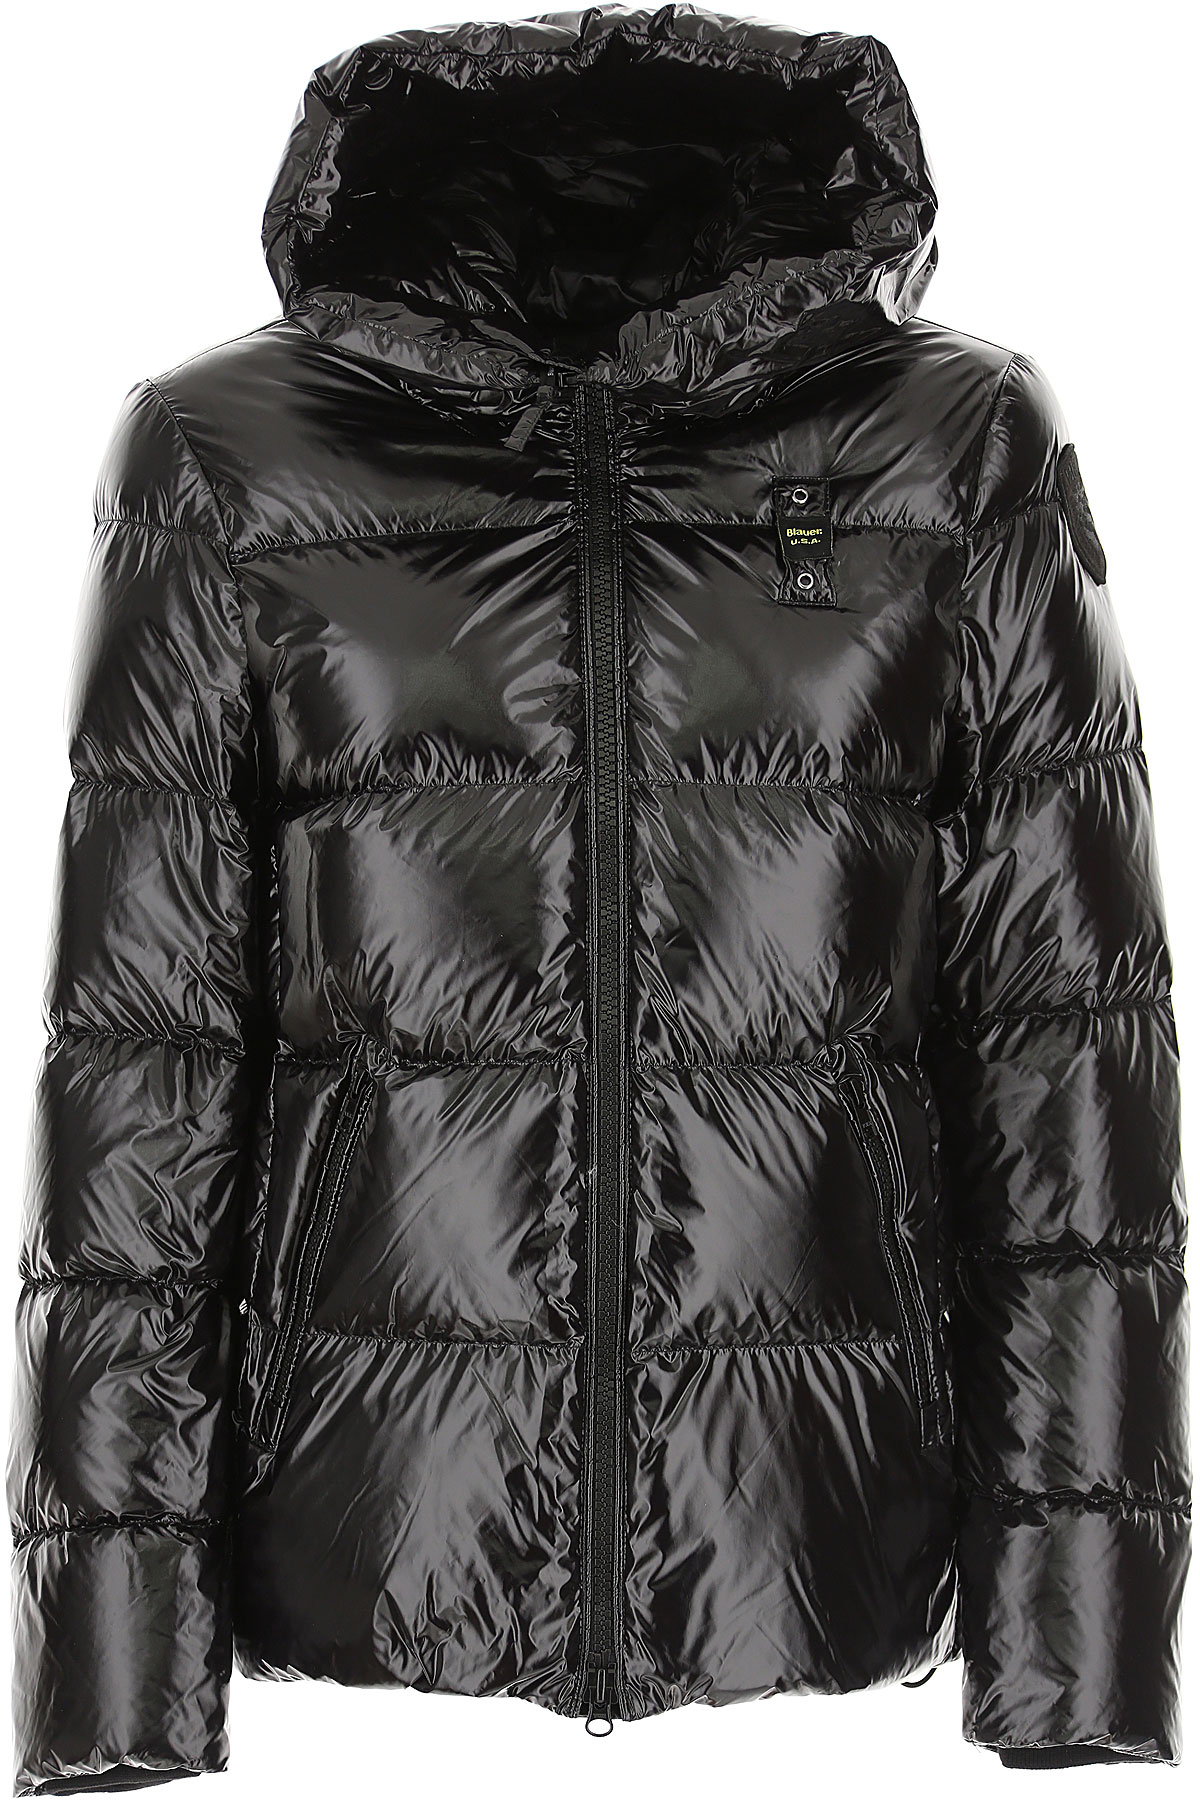 Blauer Down Jacket for Women, Puffer Ski Jacket On Sale, Black, polyester, 2019, 2 4 6 8